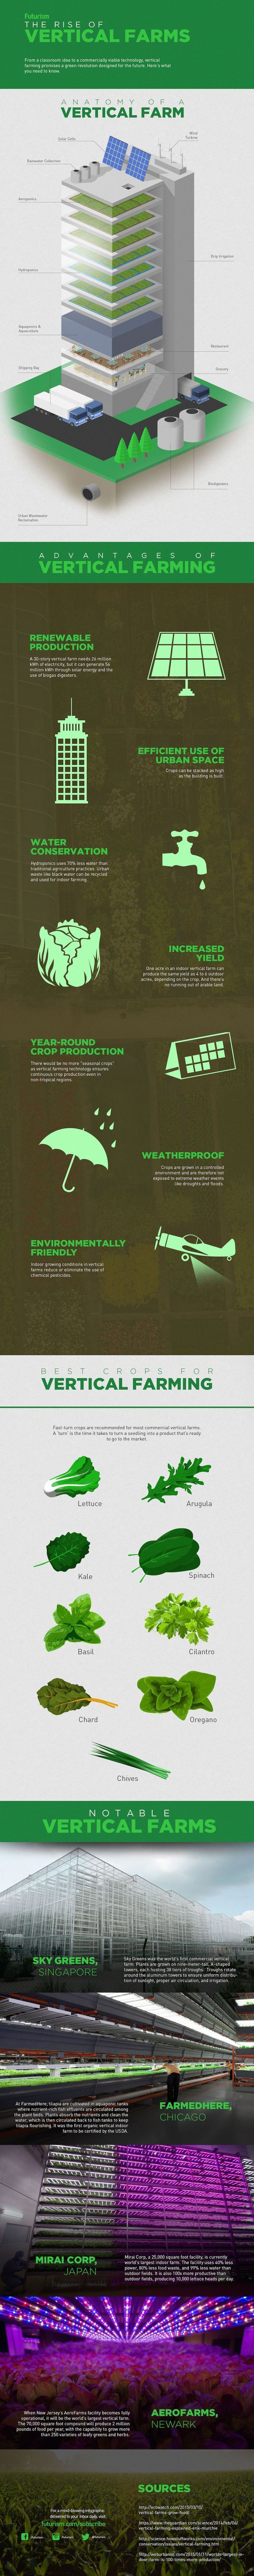 Check out Vertical Farming For Compact Spaces | Types of Farming at http://pioneersettler.com/vertical-farming/ #verticalvegetablegardeningideas